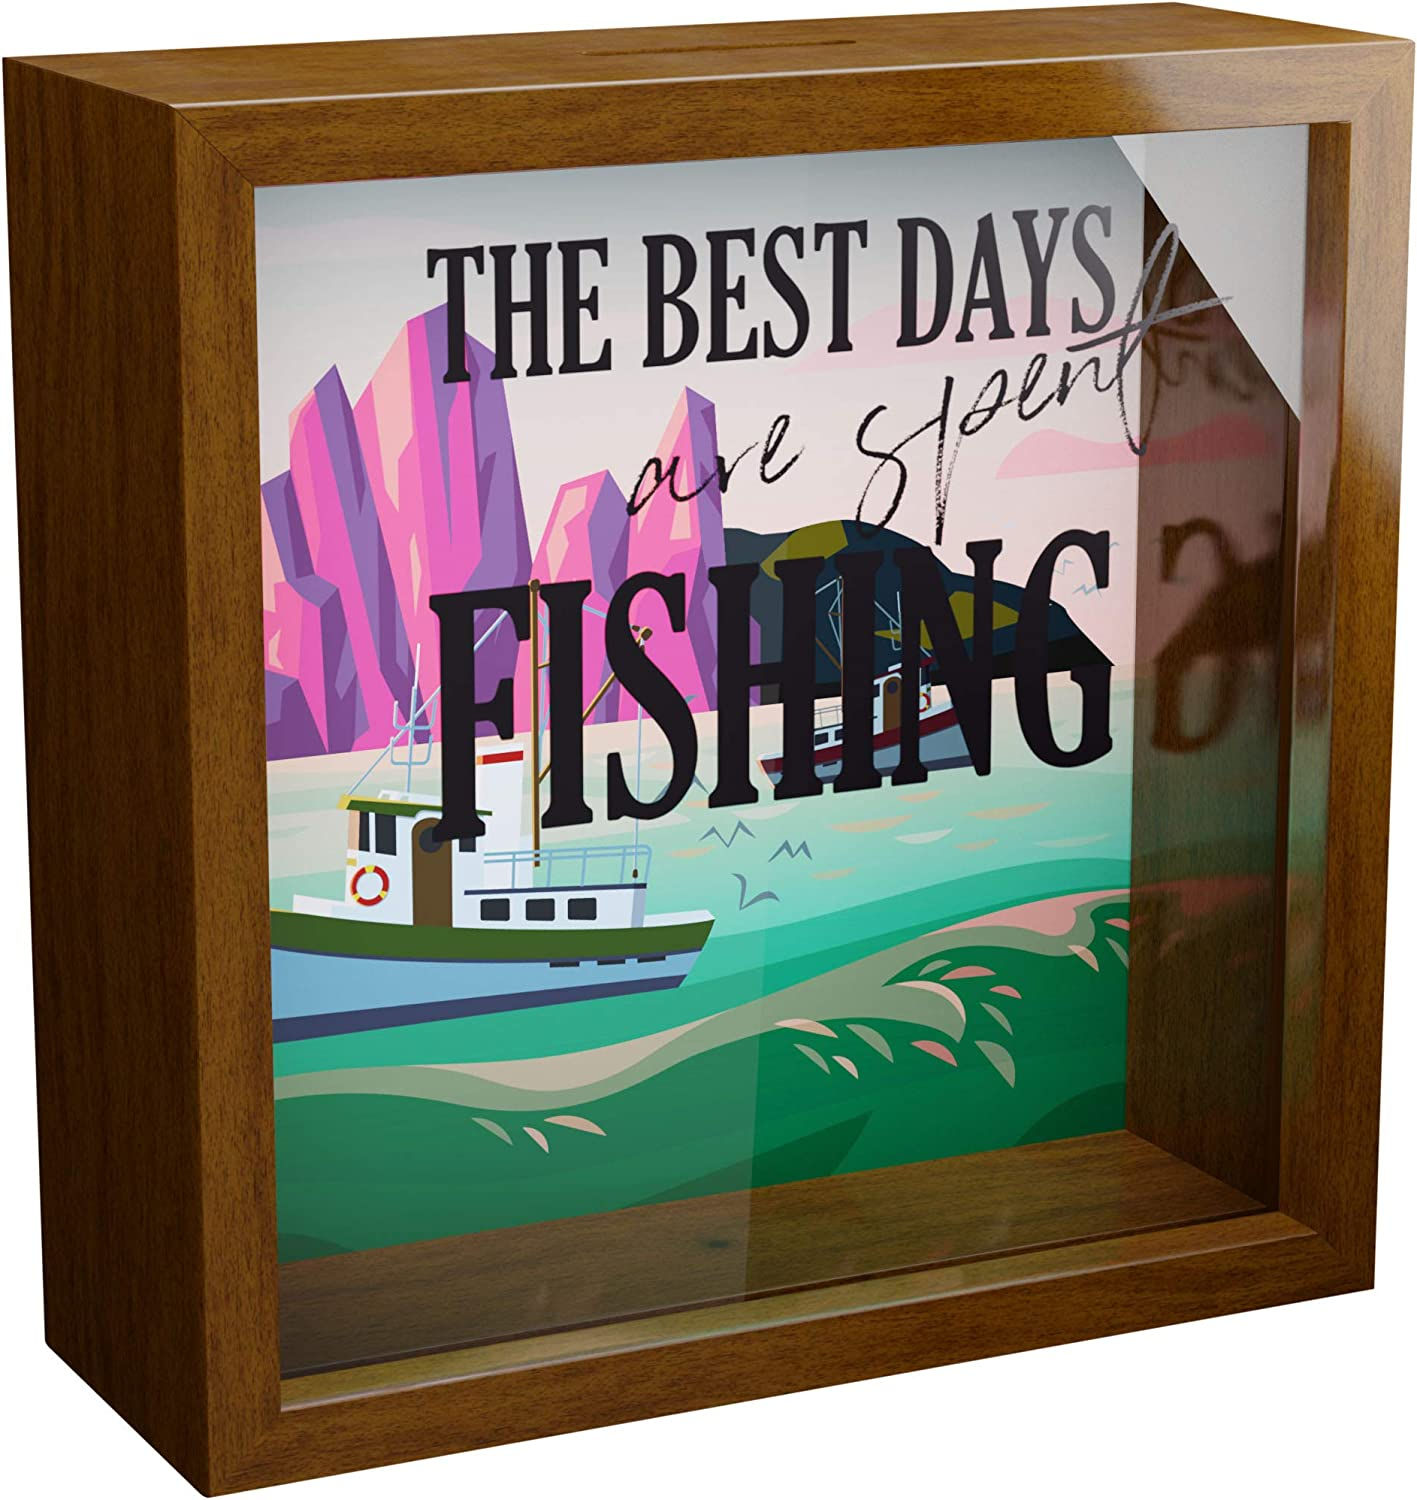 Fishing Gifts for Men | 6x6x2 Shadow Box Frame Glass Front | Ideal Gifts for Fisherman | Perfect for Fishing Wall Decor | Framed Fishing Pictures | Great Present Decor for Boys Room